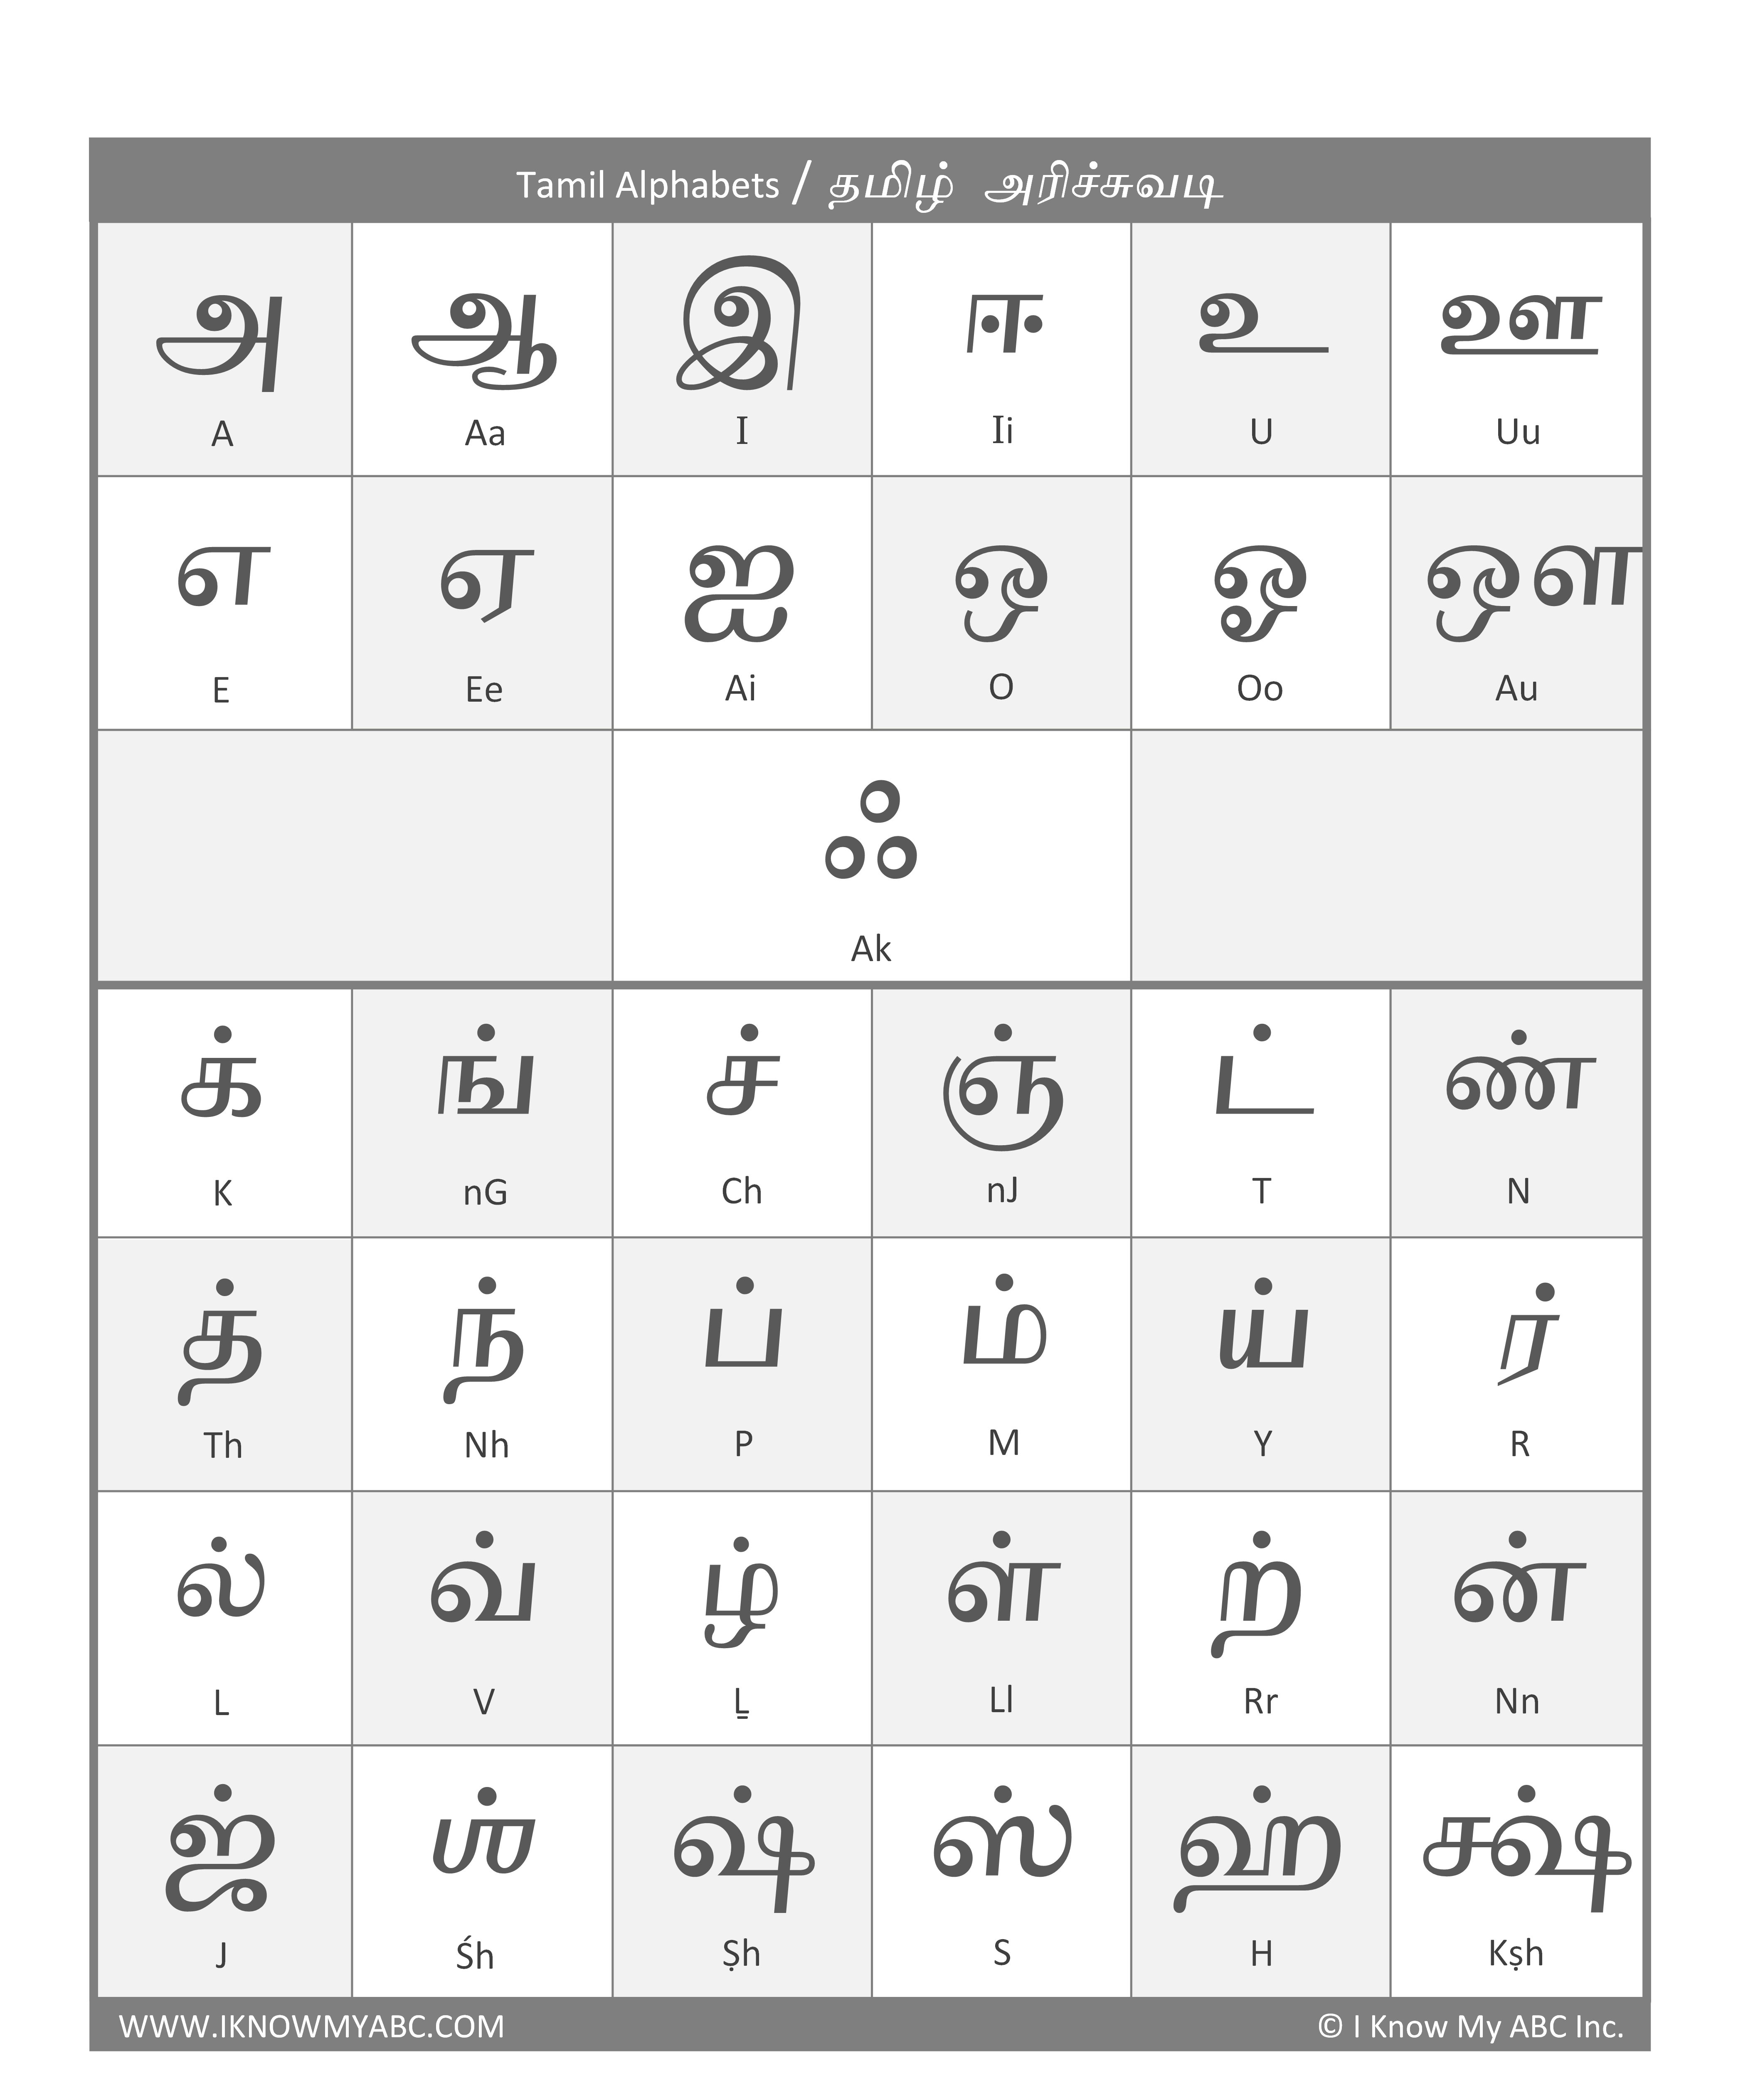 Learn Tamil Alphabets Free Educational Resources I Know My Abc Inc